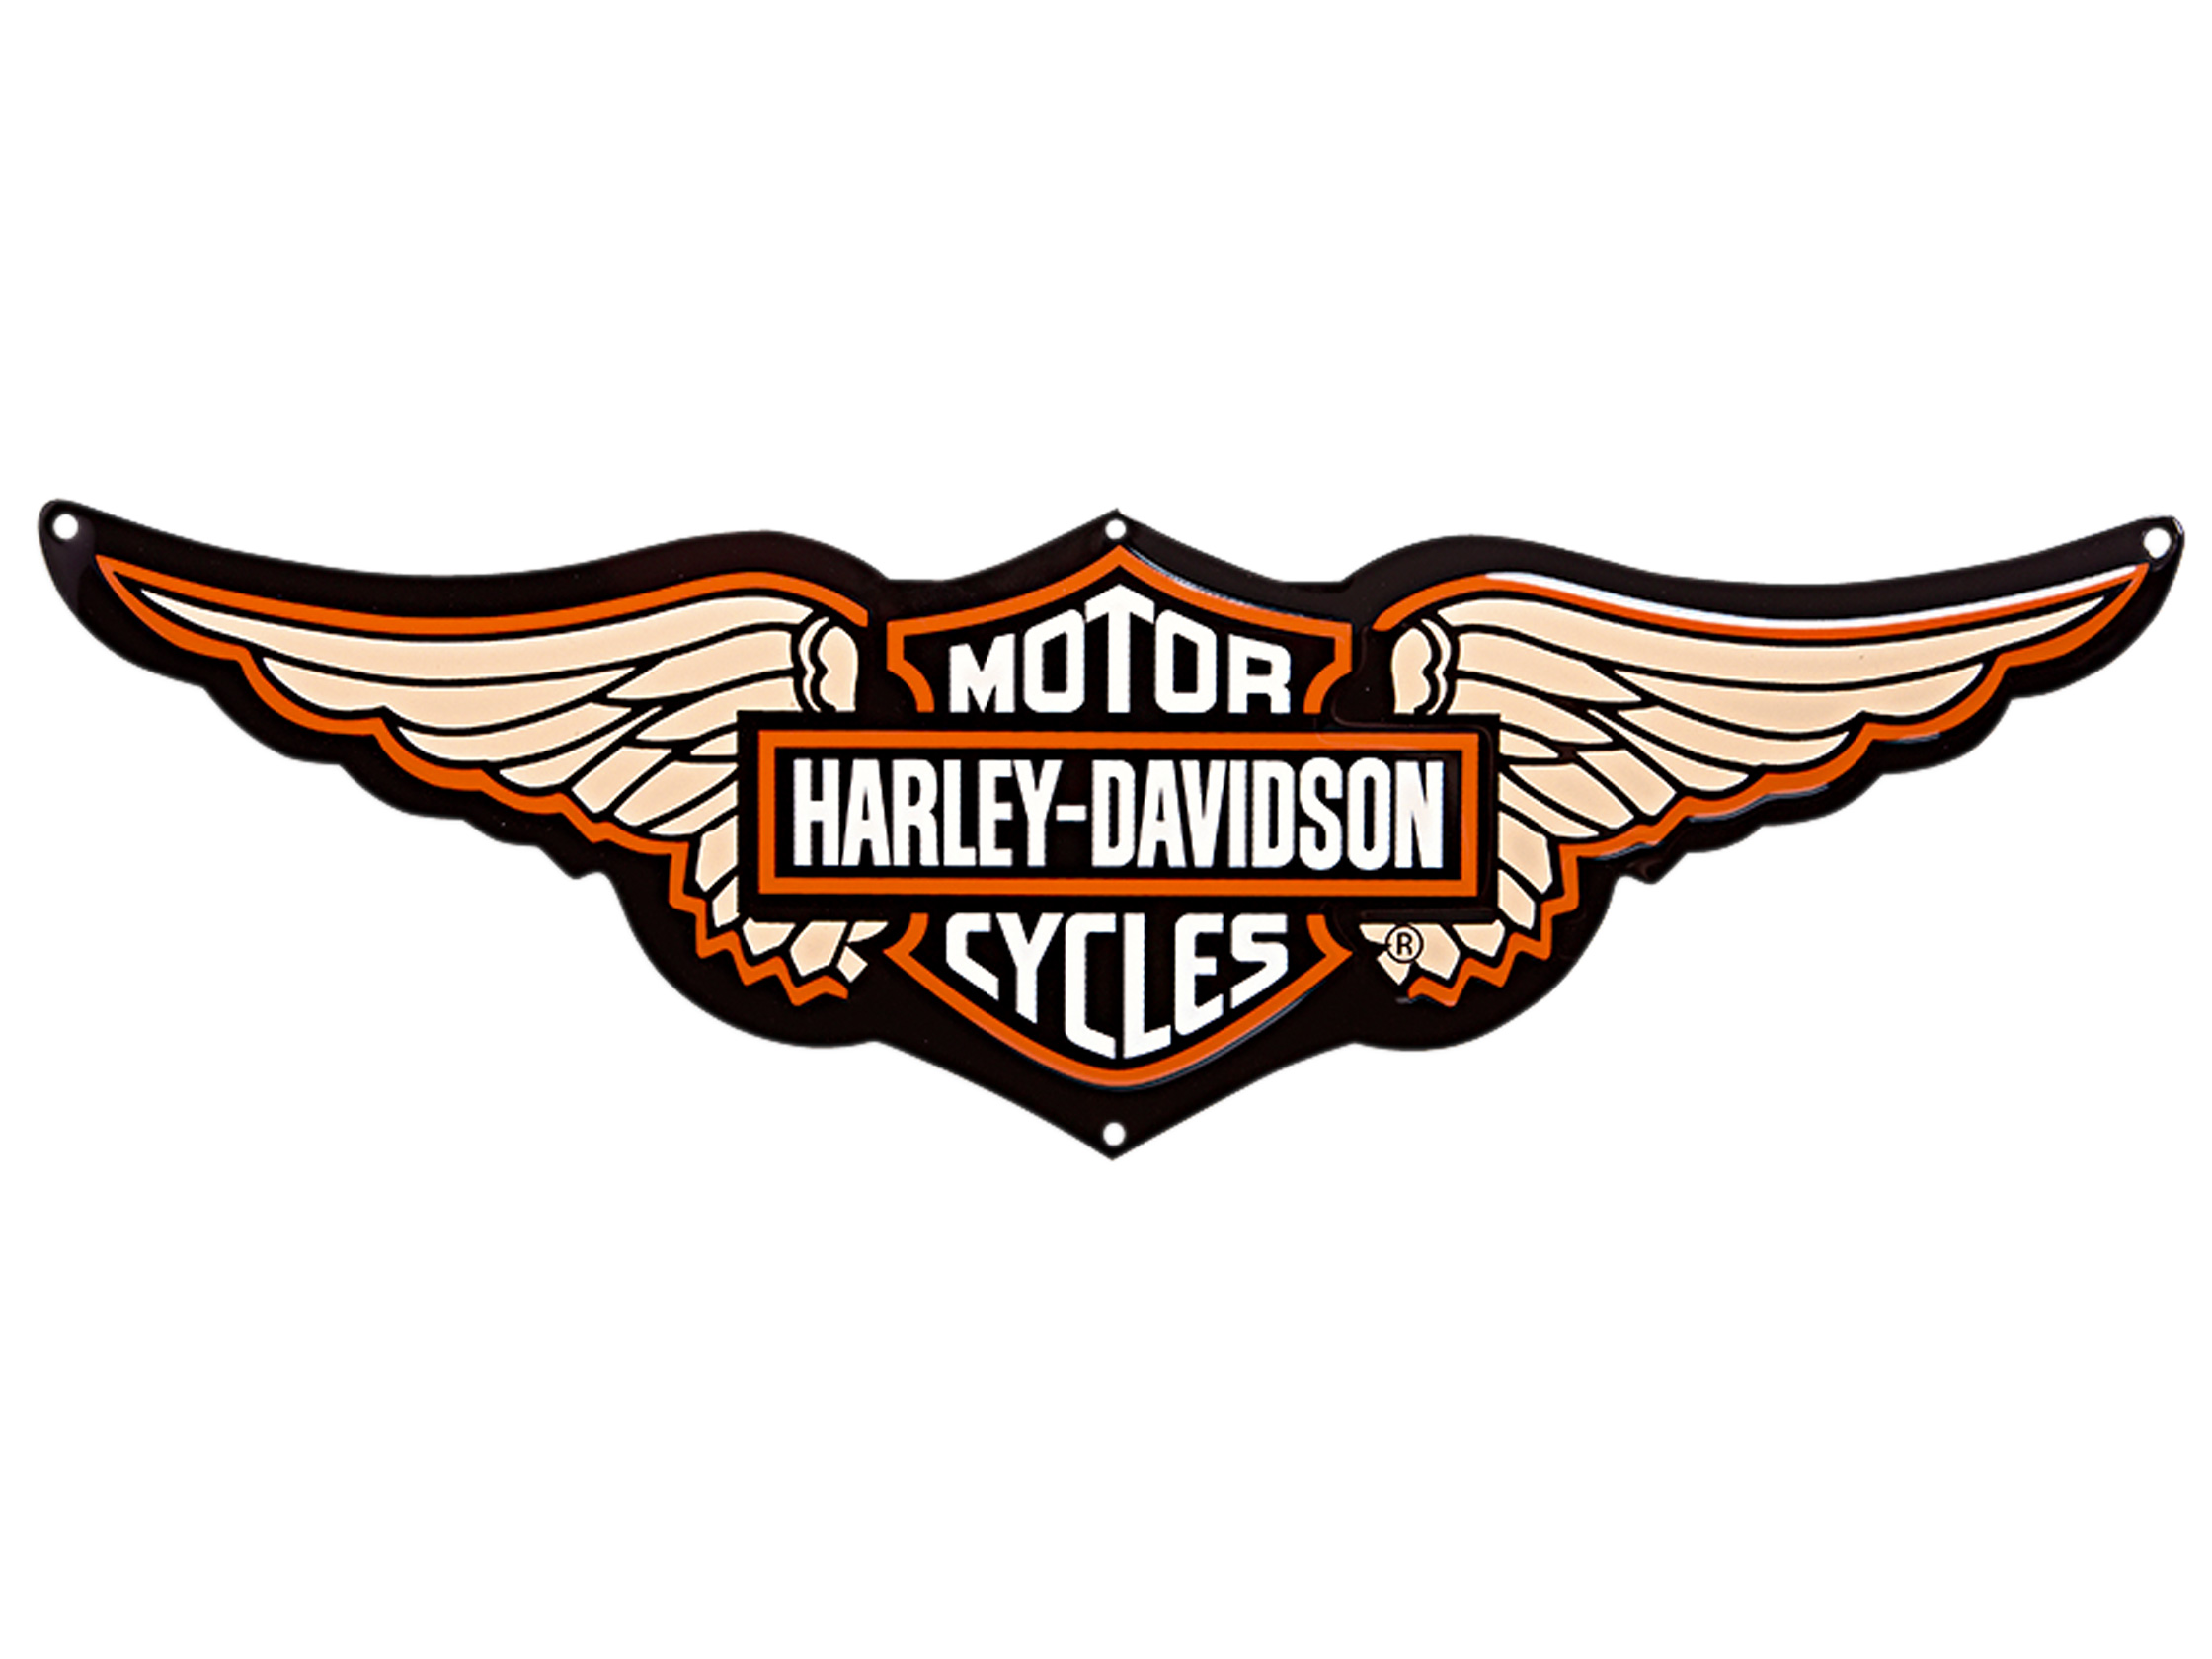 2240x1680 Harley Davidson Free Motorcycle Harley Clipart 3